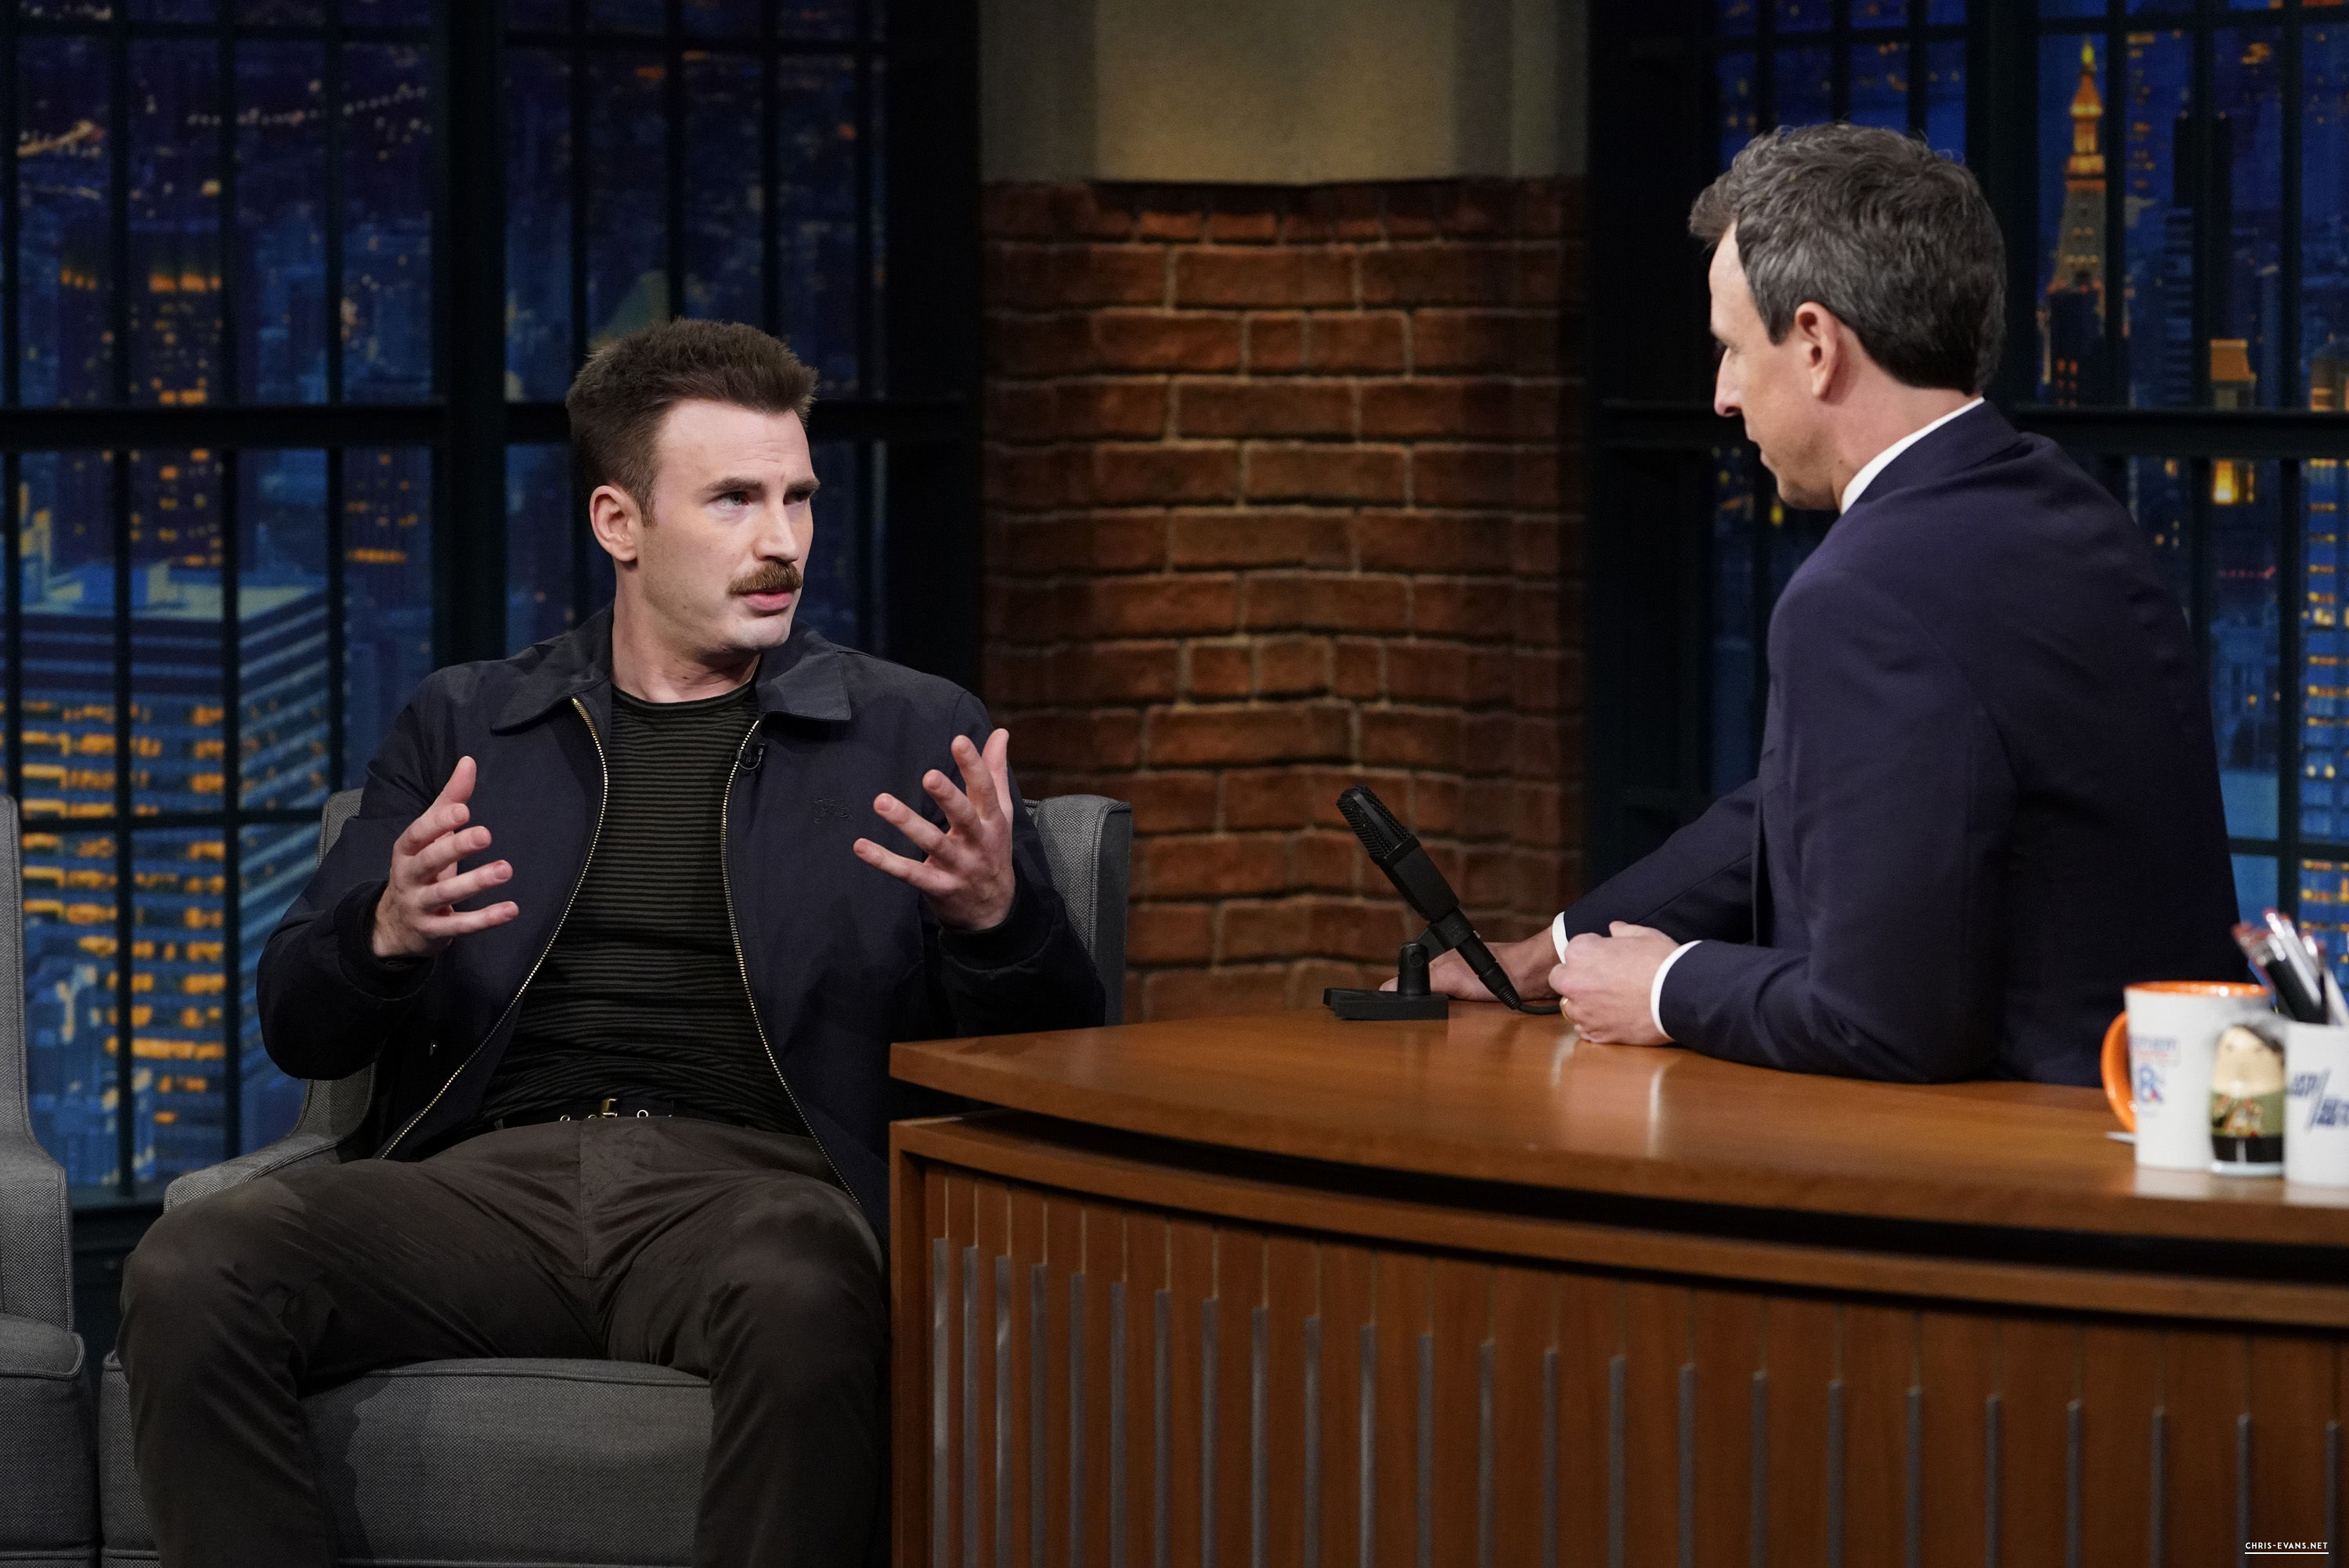 http://chris-evans.net/photos/albums/Appearances/2018/04%2023%20Late%20Night%20with%20Seth%20Meyers/002.jpg